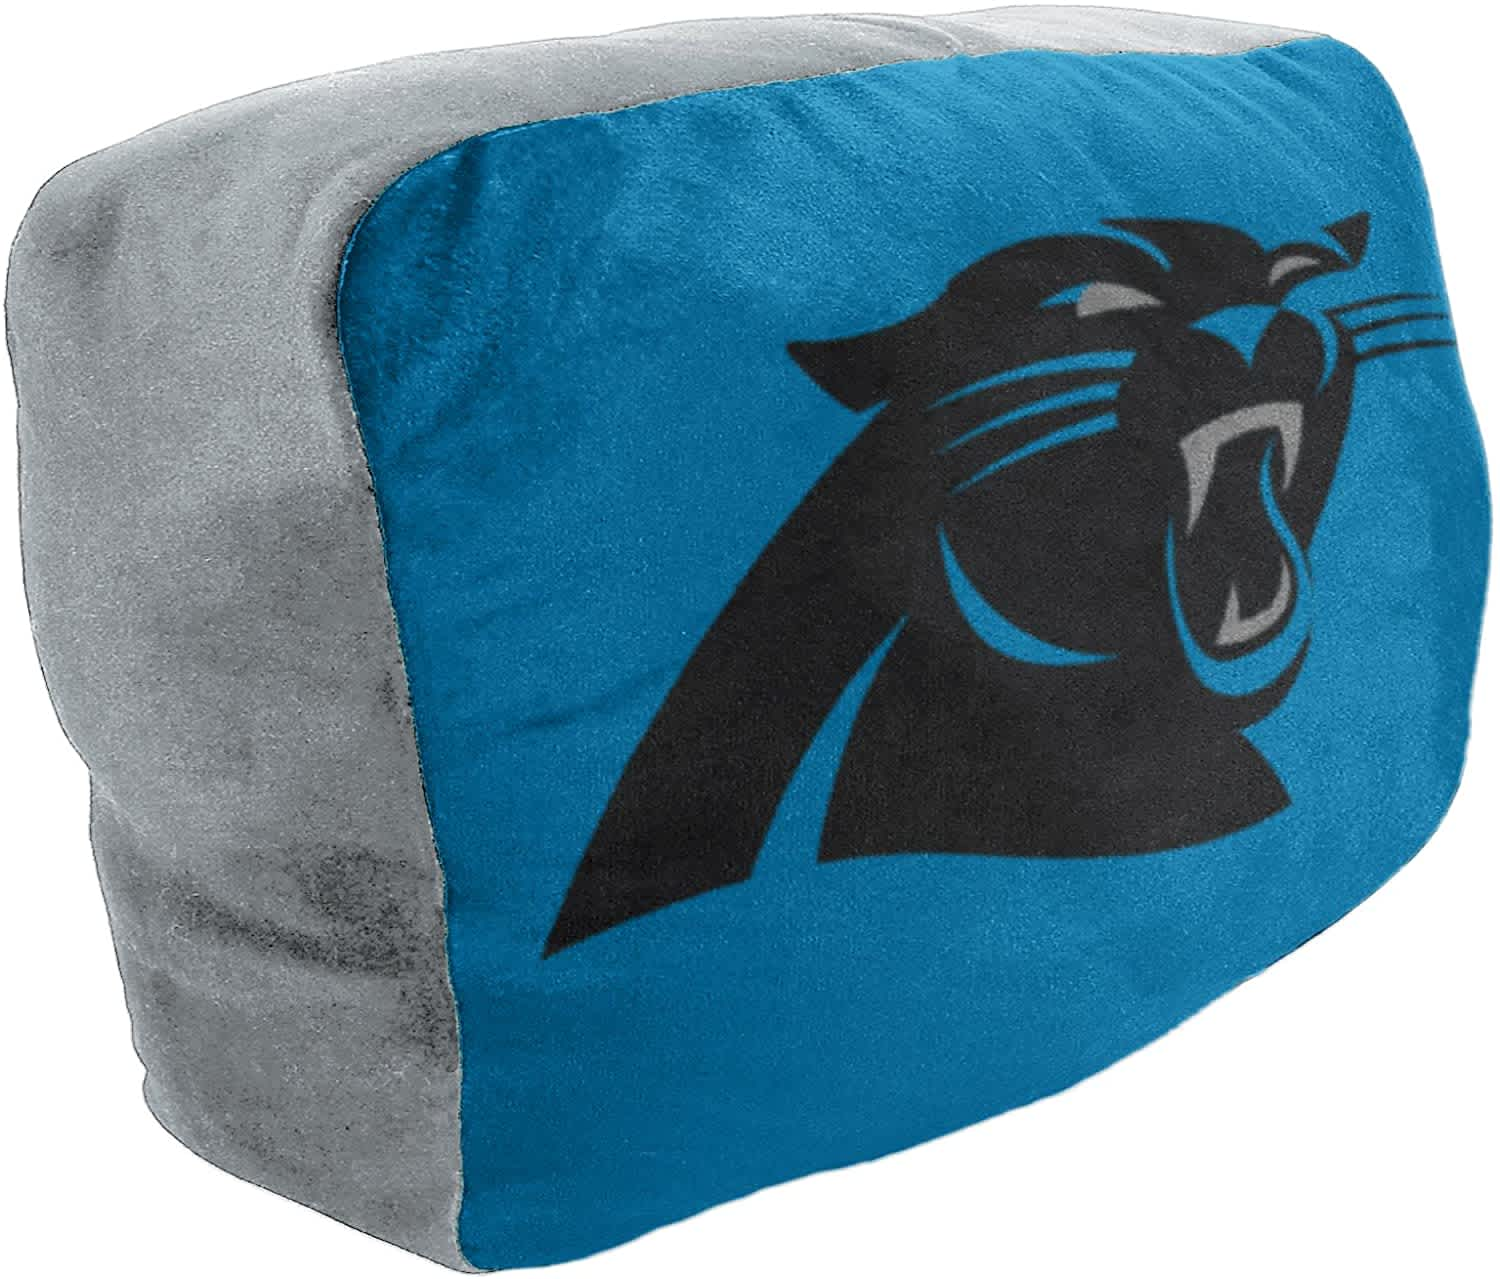 The Northwest Company Officially Licensed NFL Cloud Pillow